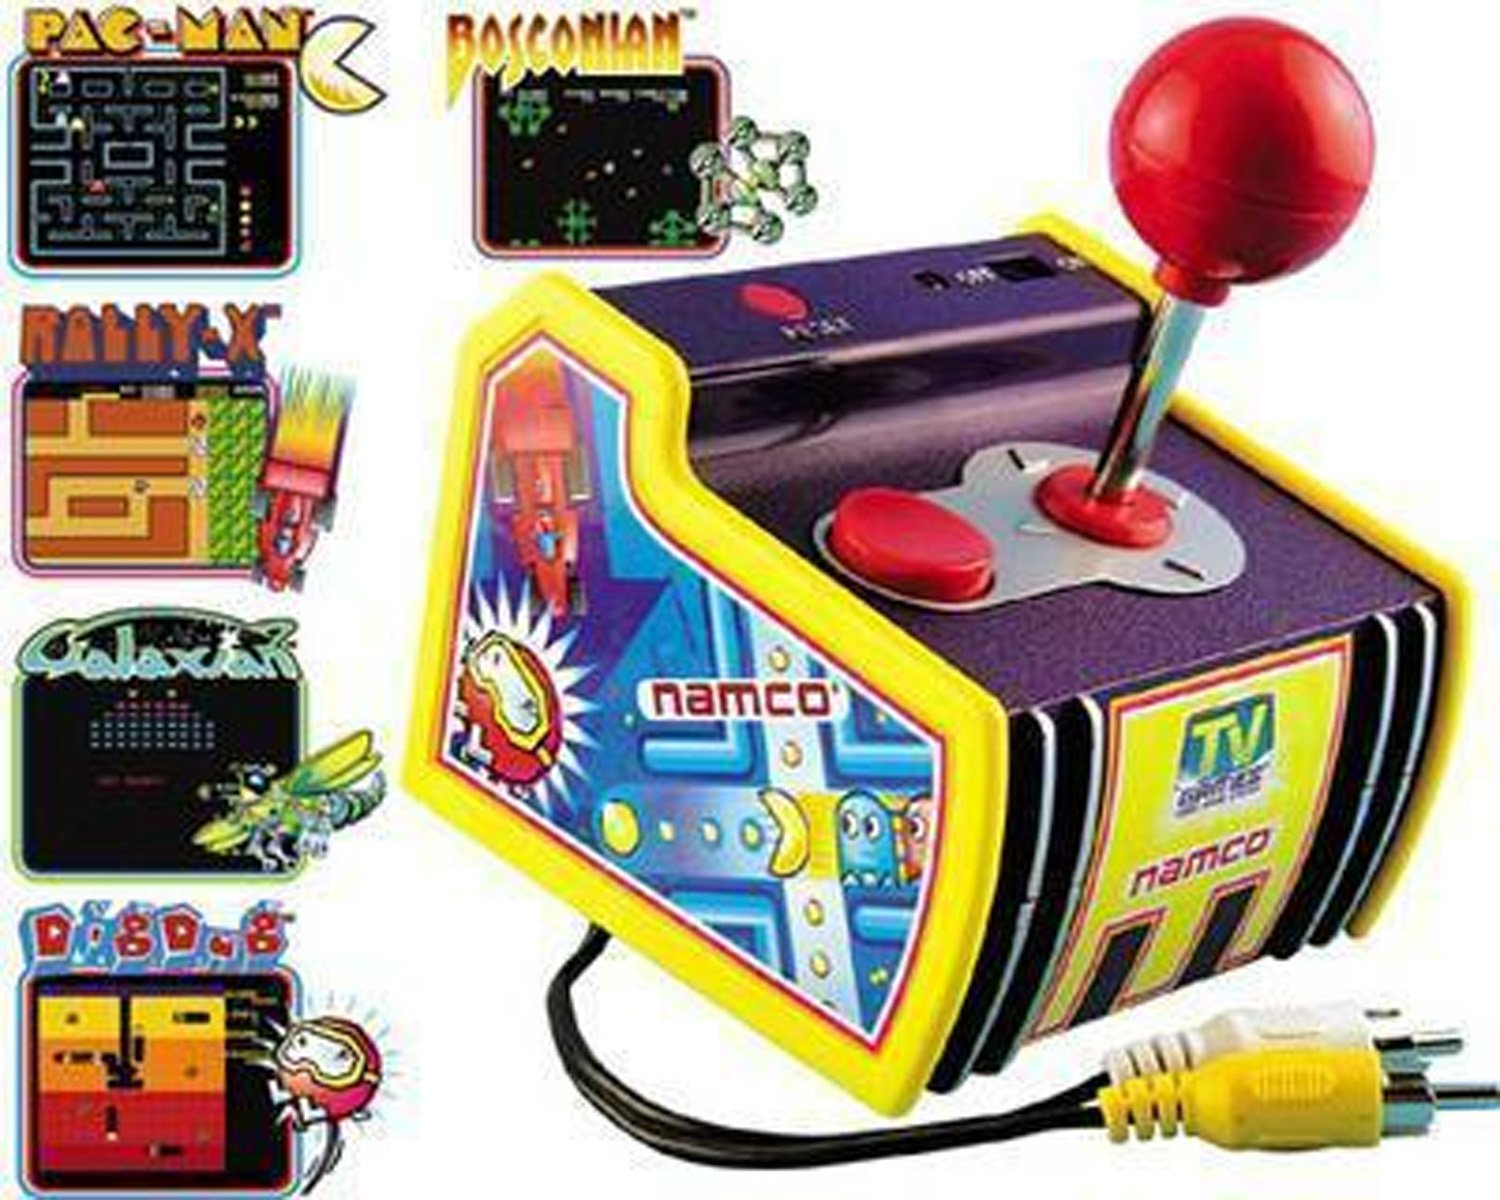 Original Pac Man Arcade Classics Namco Plug & Play TV Games